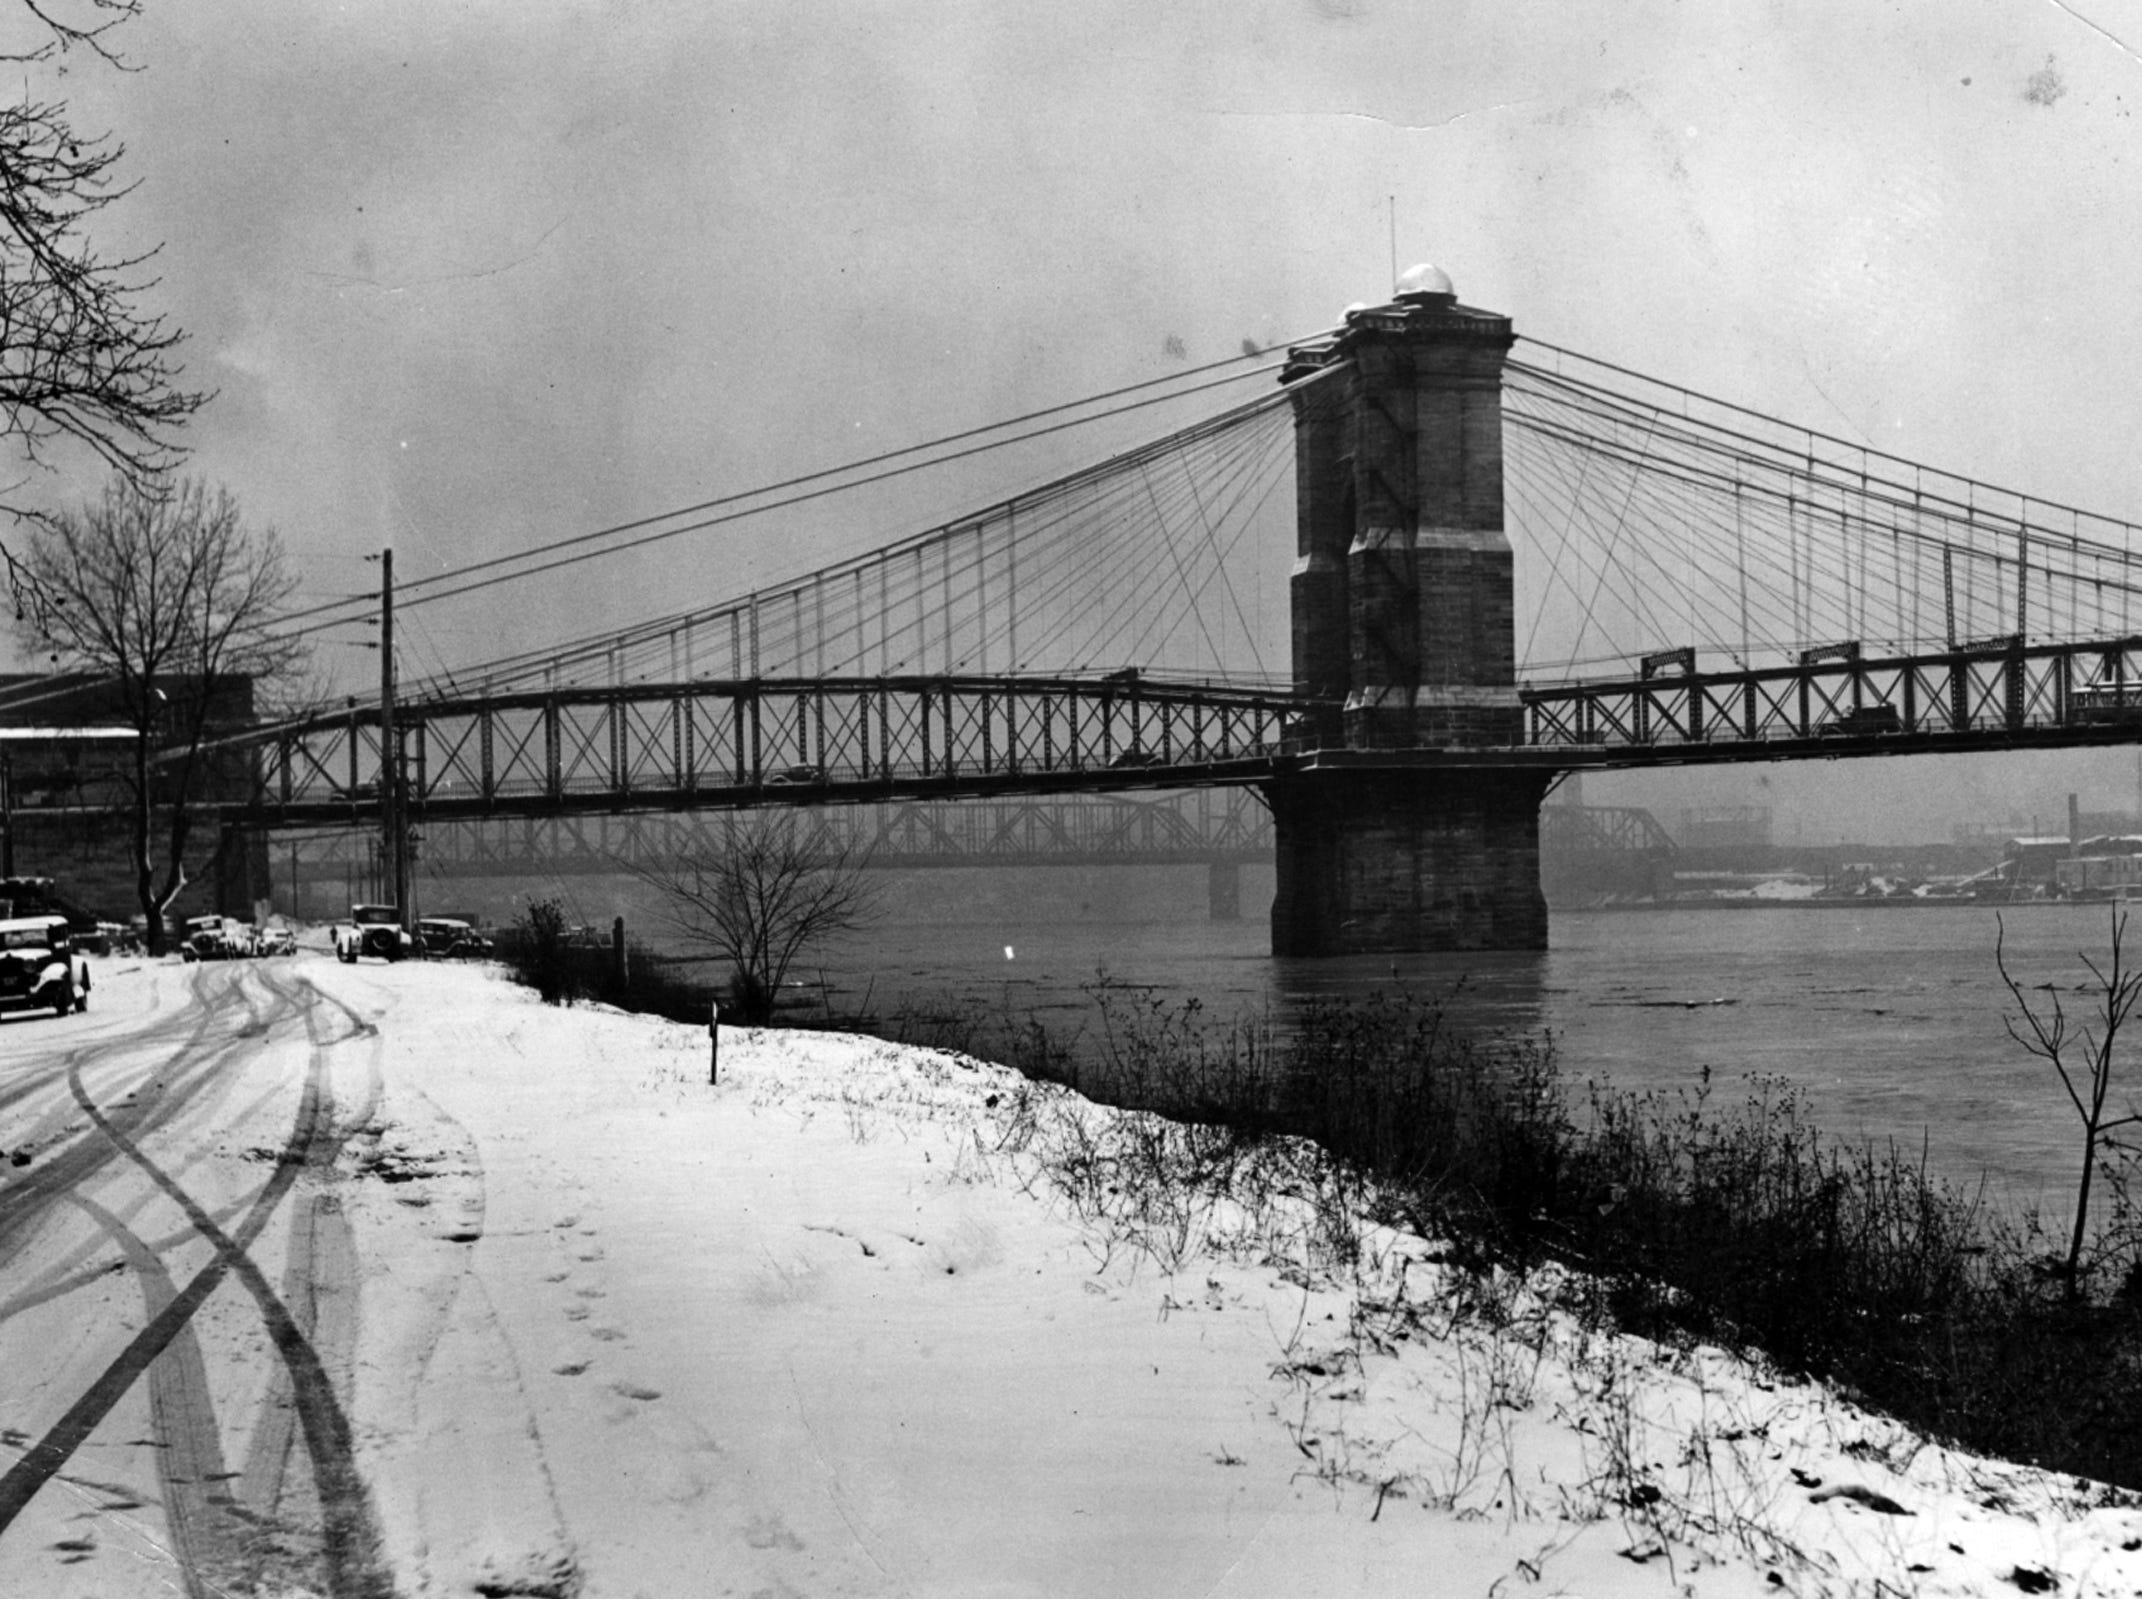 FEBRUARY 4, 1939: John A. Roebling Suspension Bridge. From the Enquirer archives scanned May 16, 2013